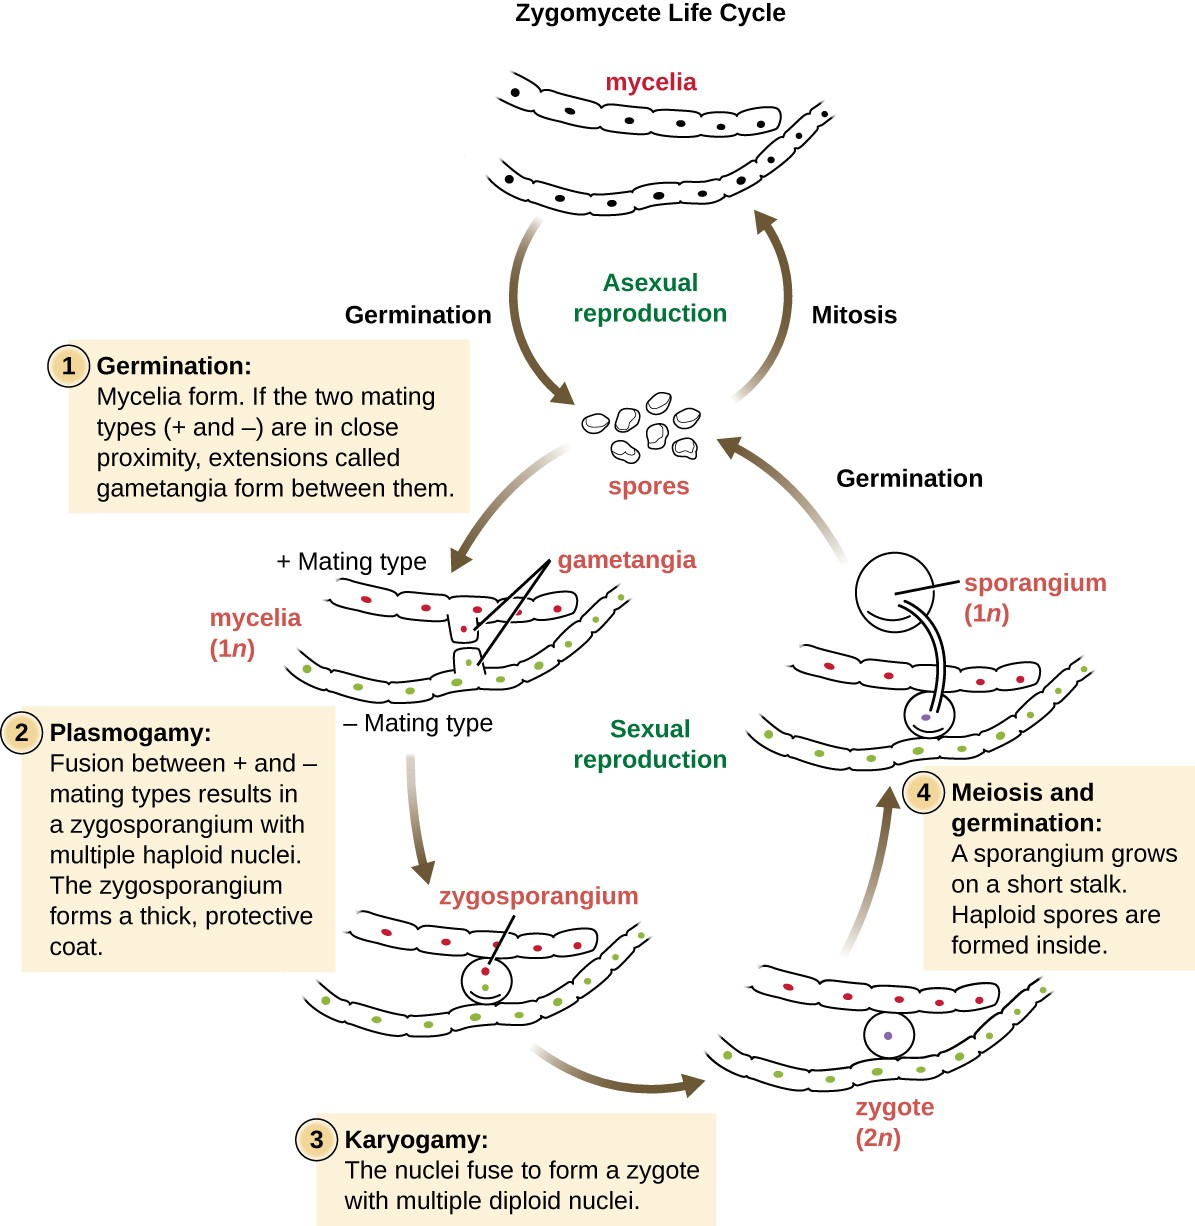 hight resolution of zygomycete life cycle the mycelia can undergo asexual reproduction by forming spores via mitosis